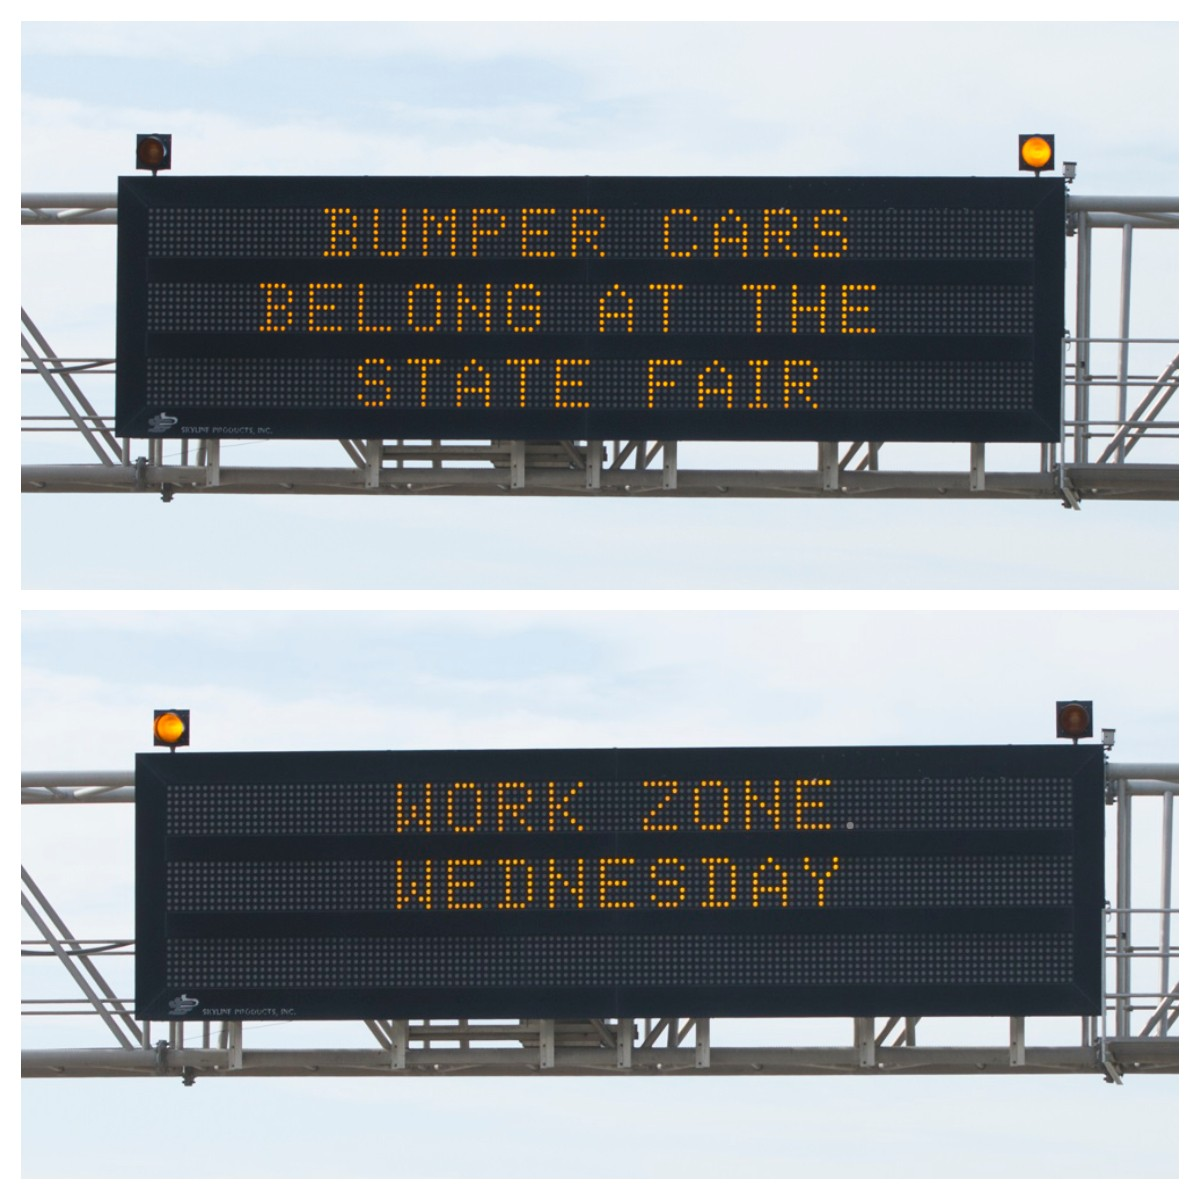 /content/dam/ok/en/odot/images/message-signs/09.14.16.jpg